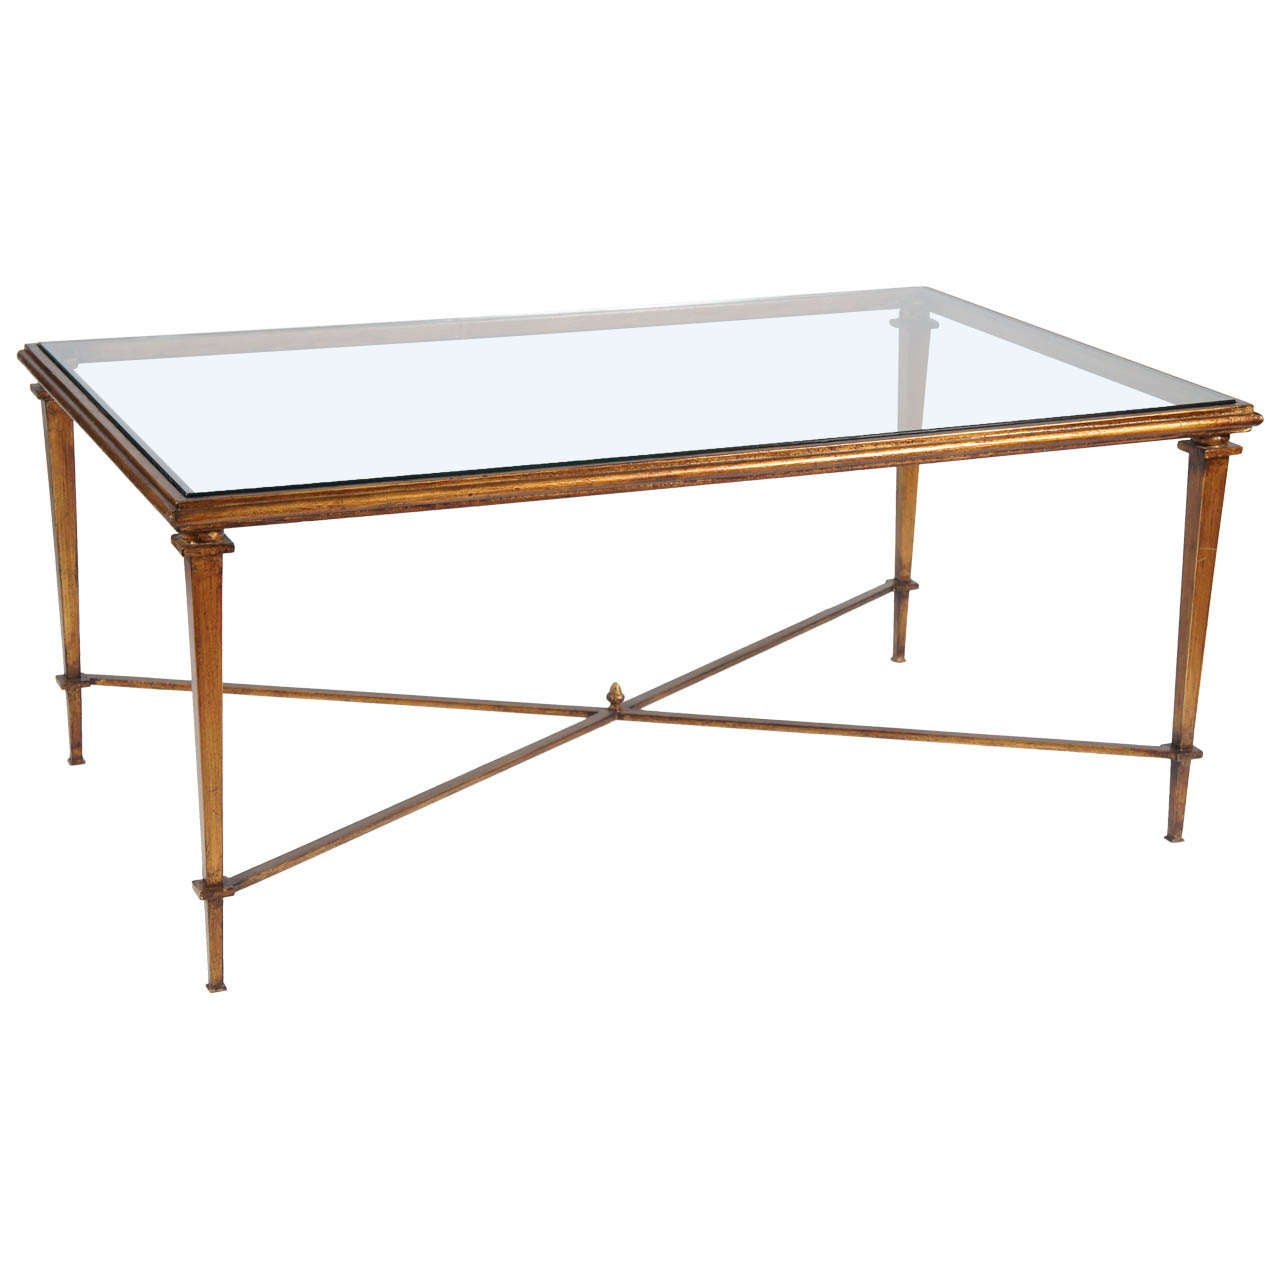 Neoclassical style metal coffee table with glass top for sale at 1stdibs Glass top for coffee table